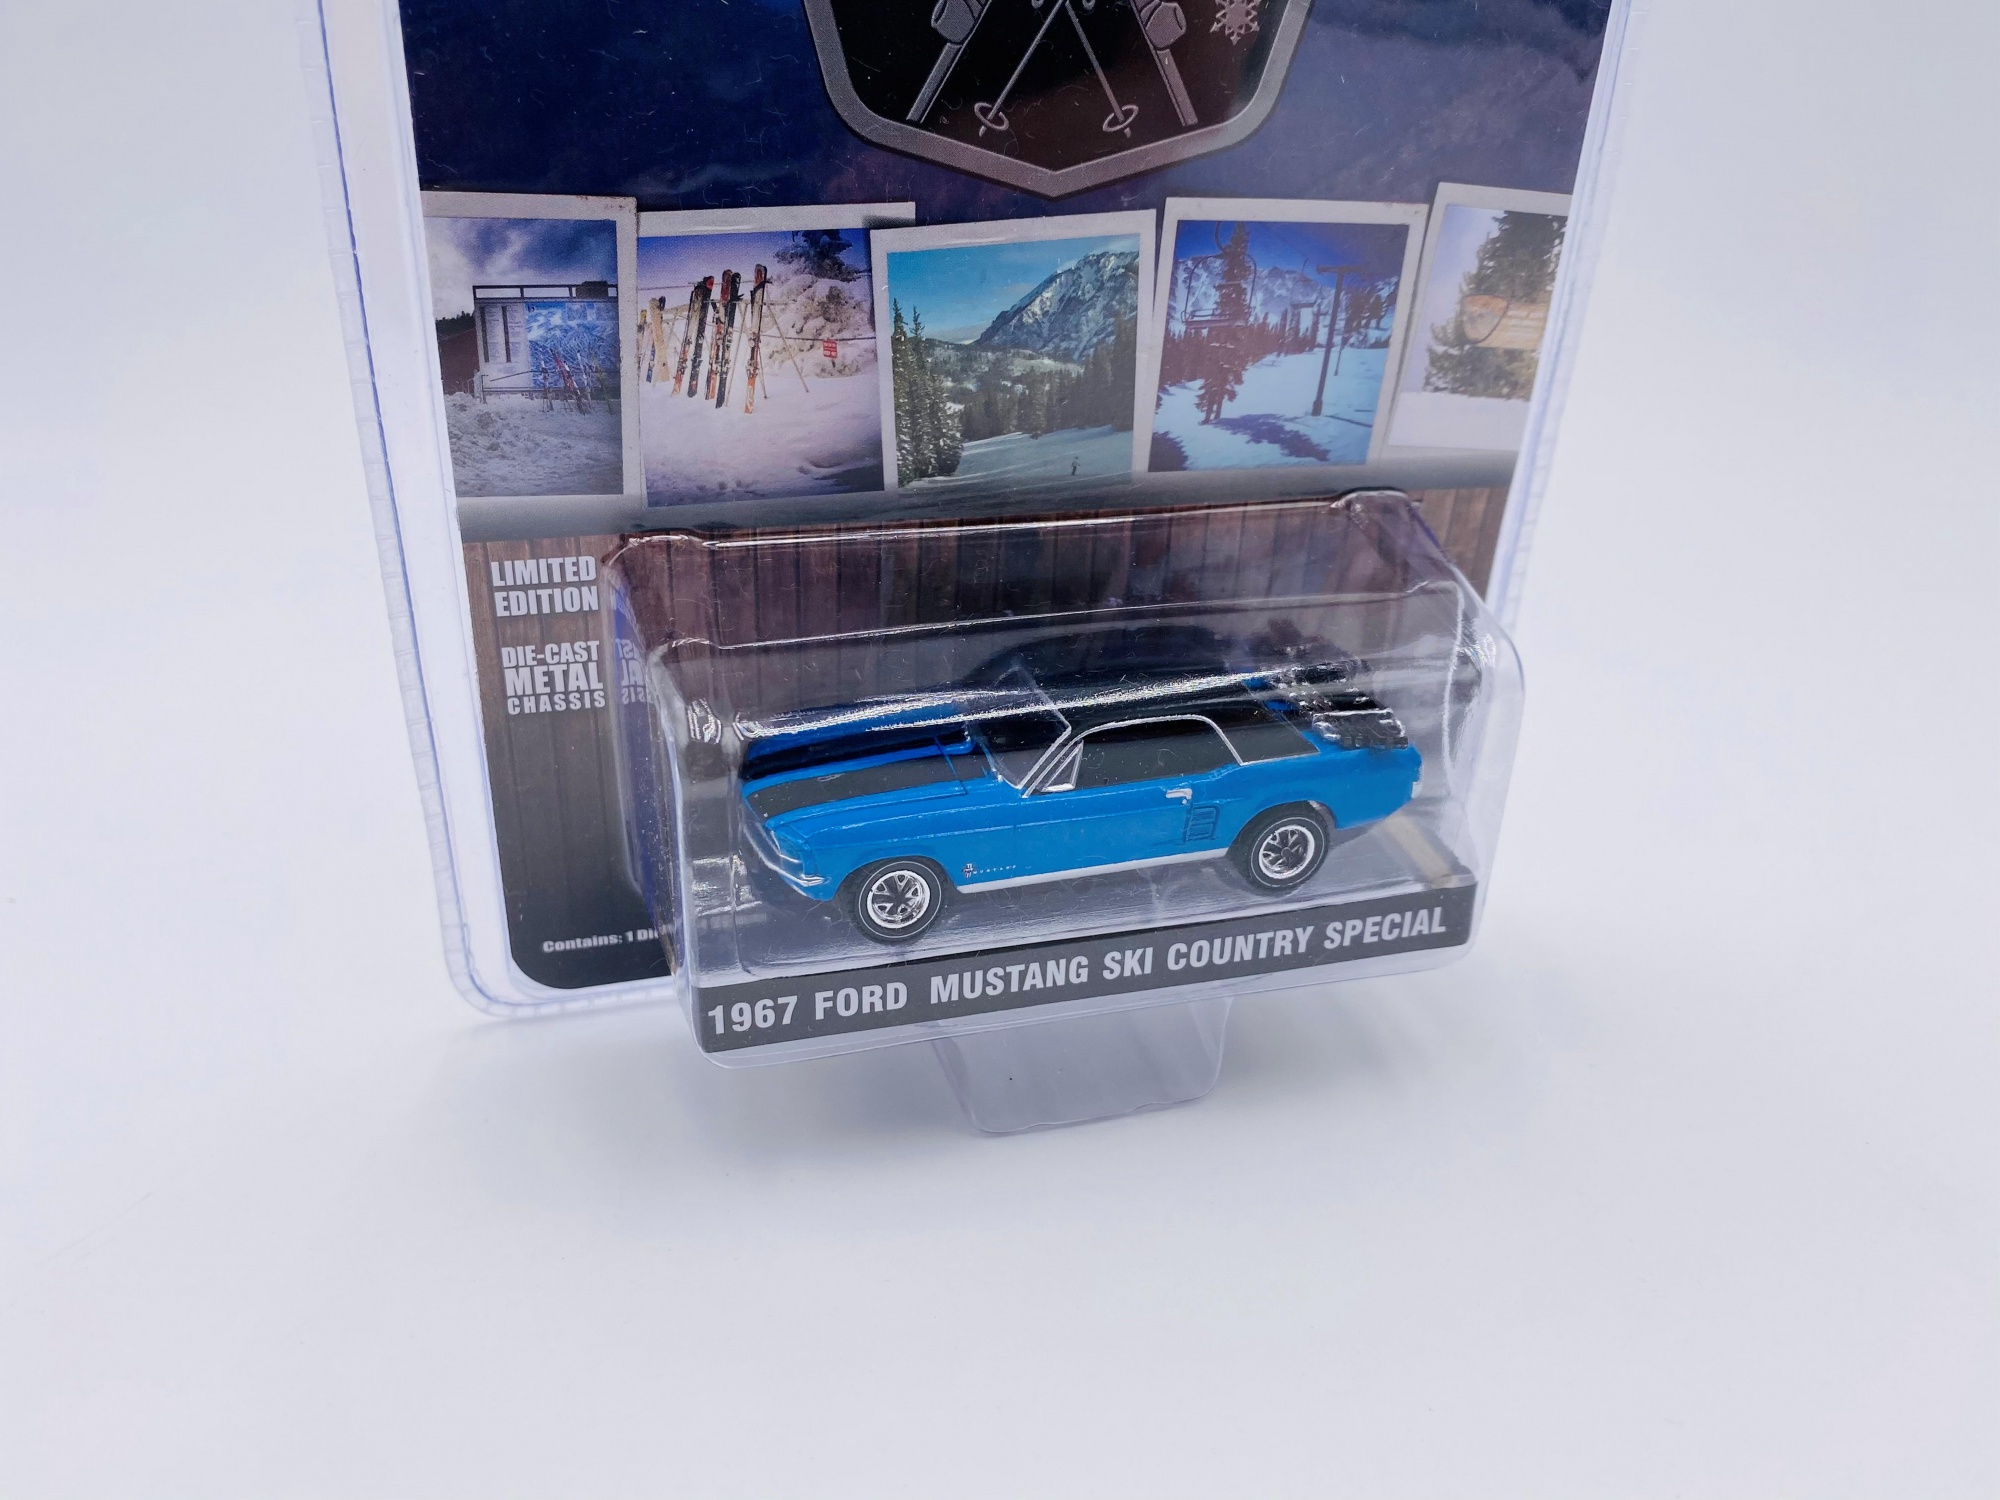 Ford Mustang Coupe Ski Country